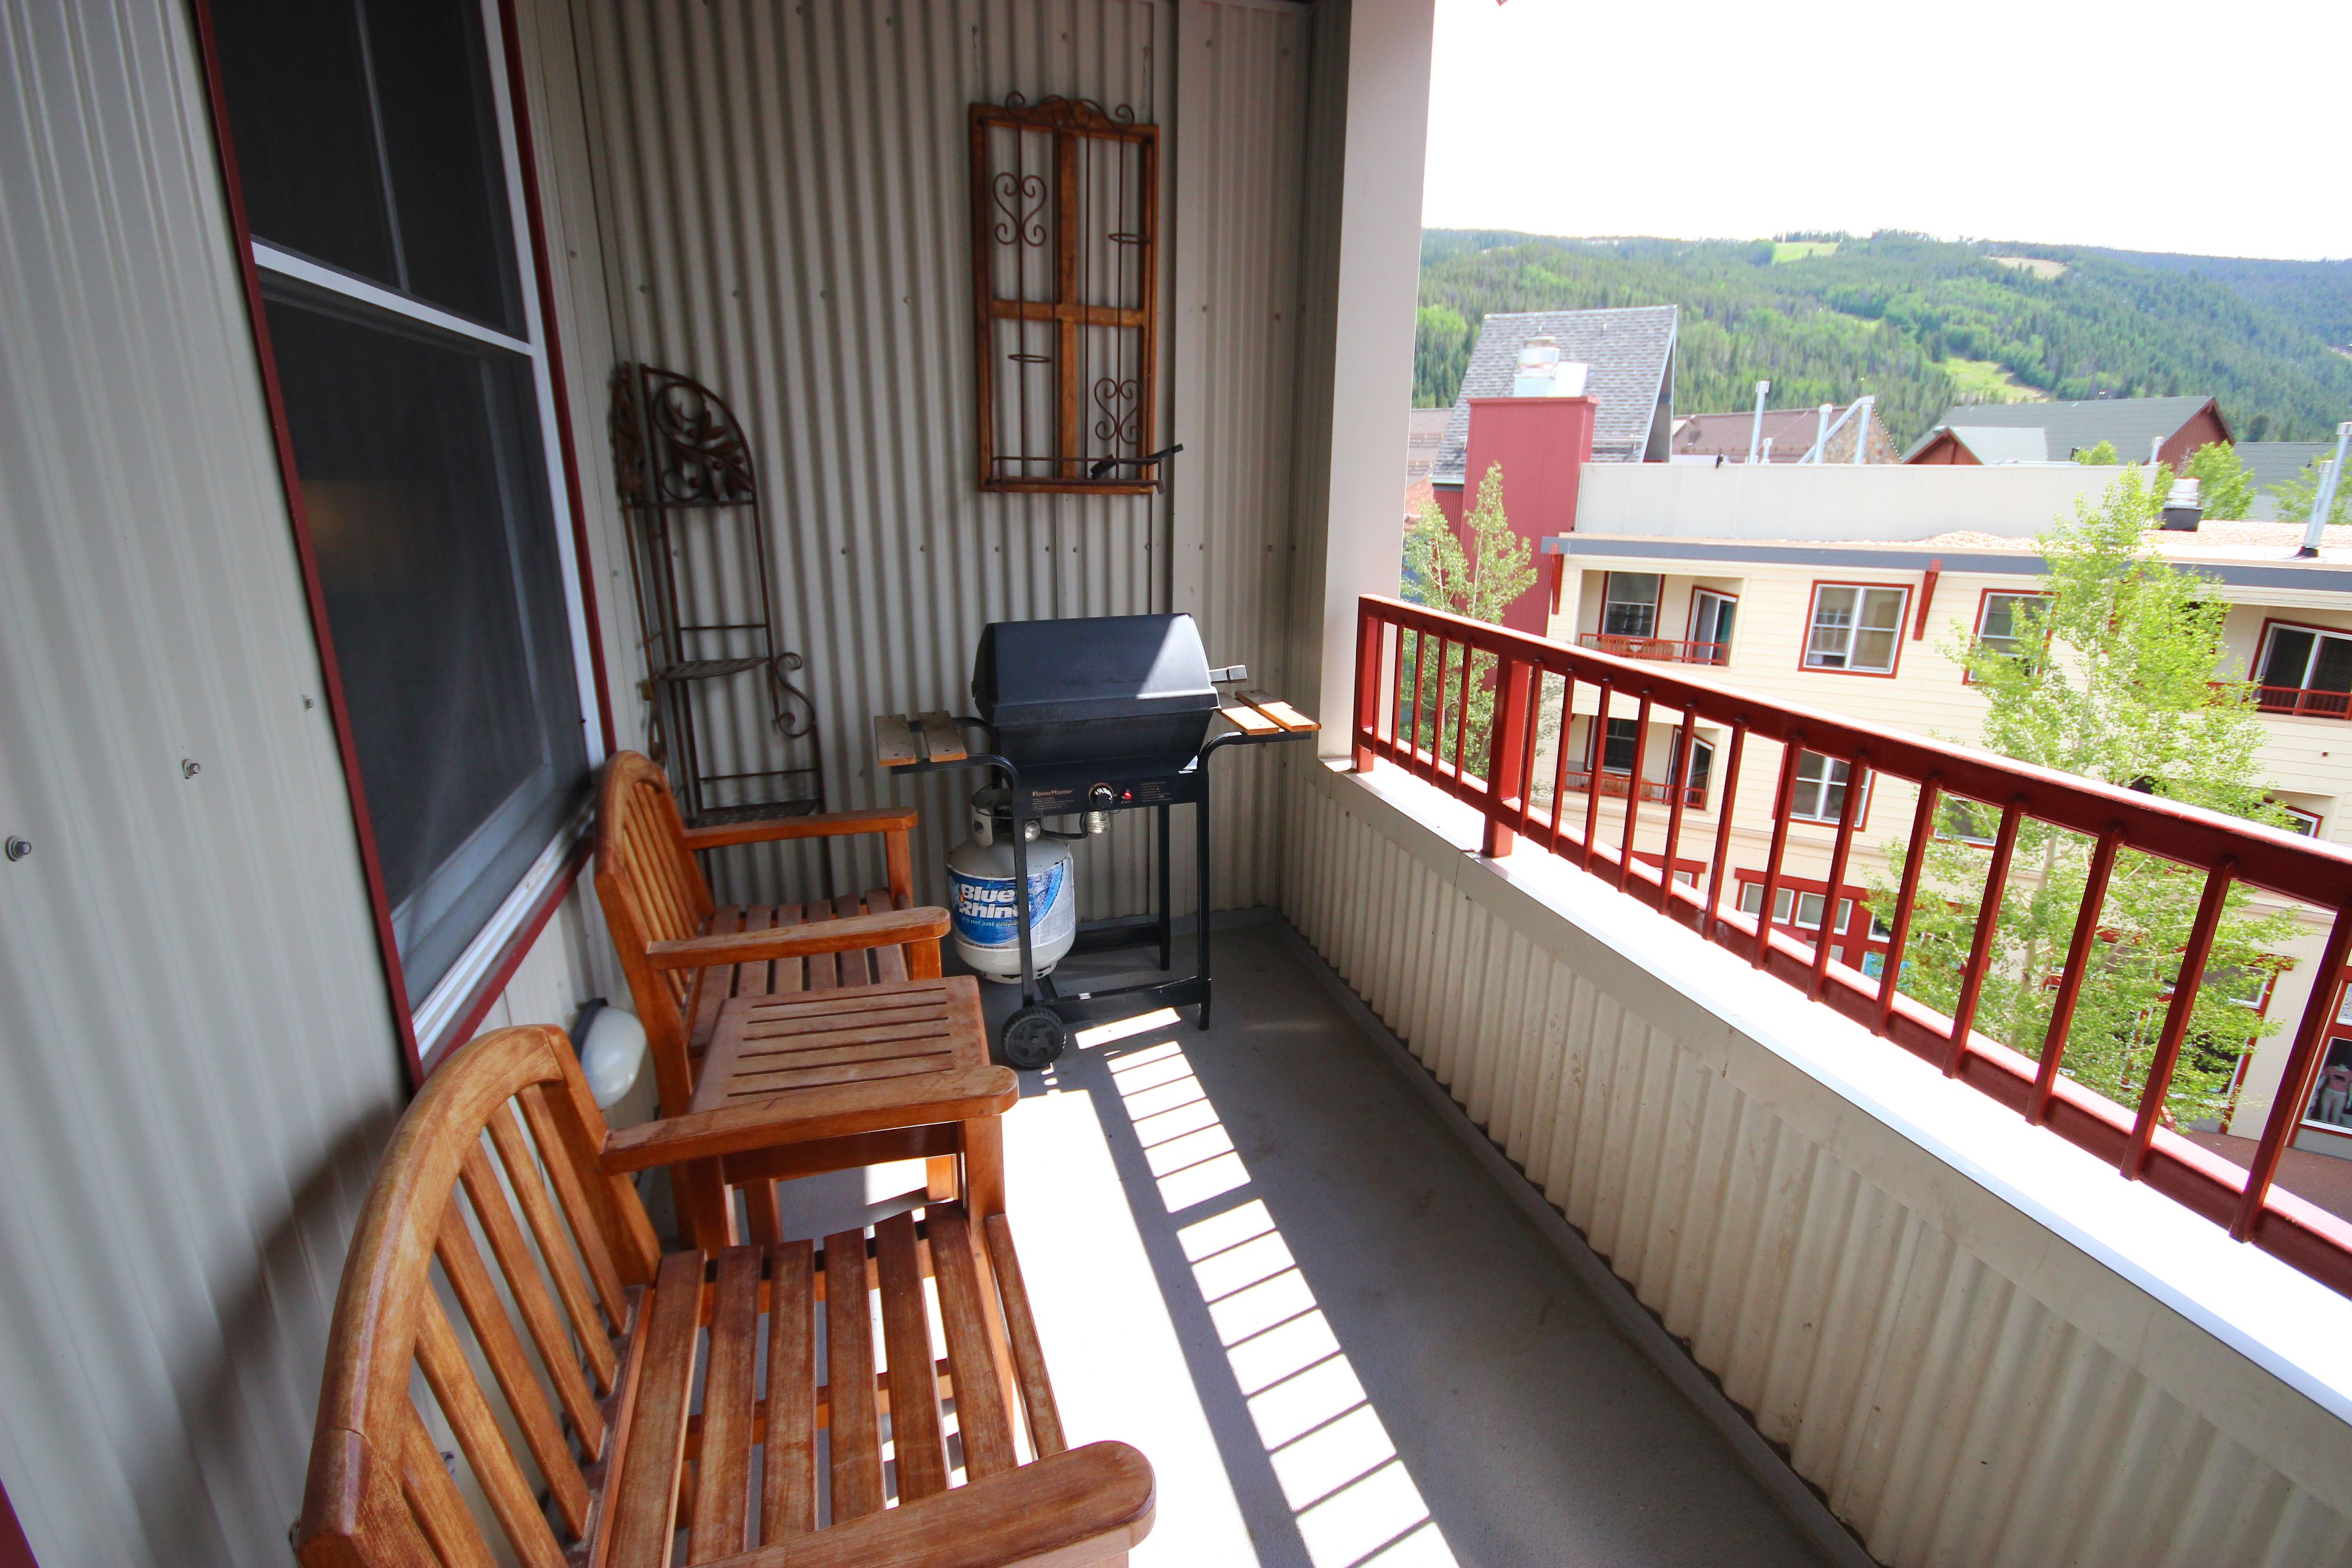 Porch with space for grilling and relaxing